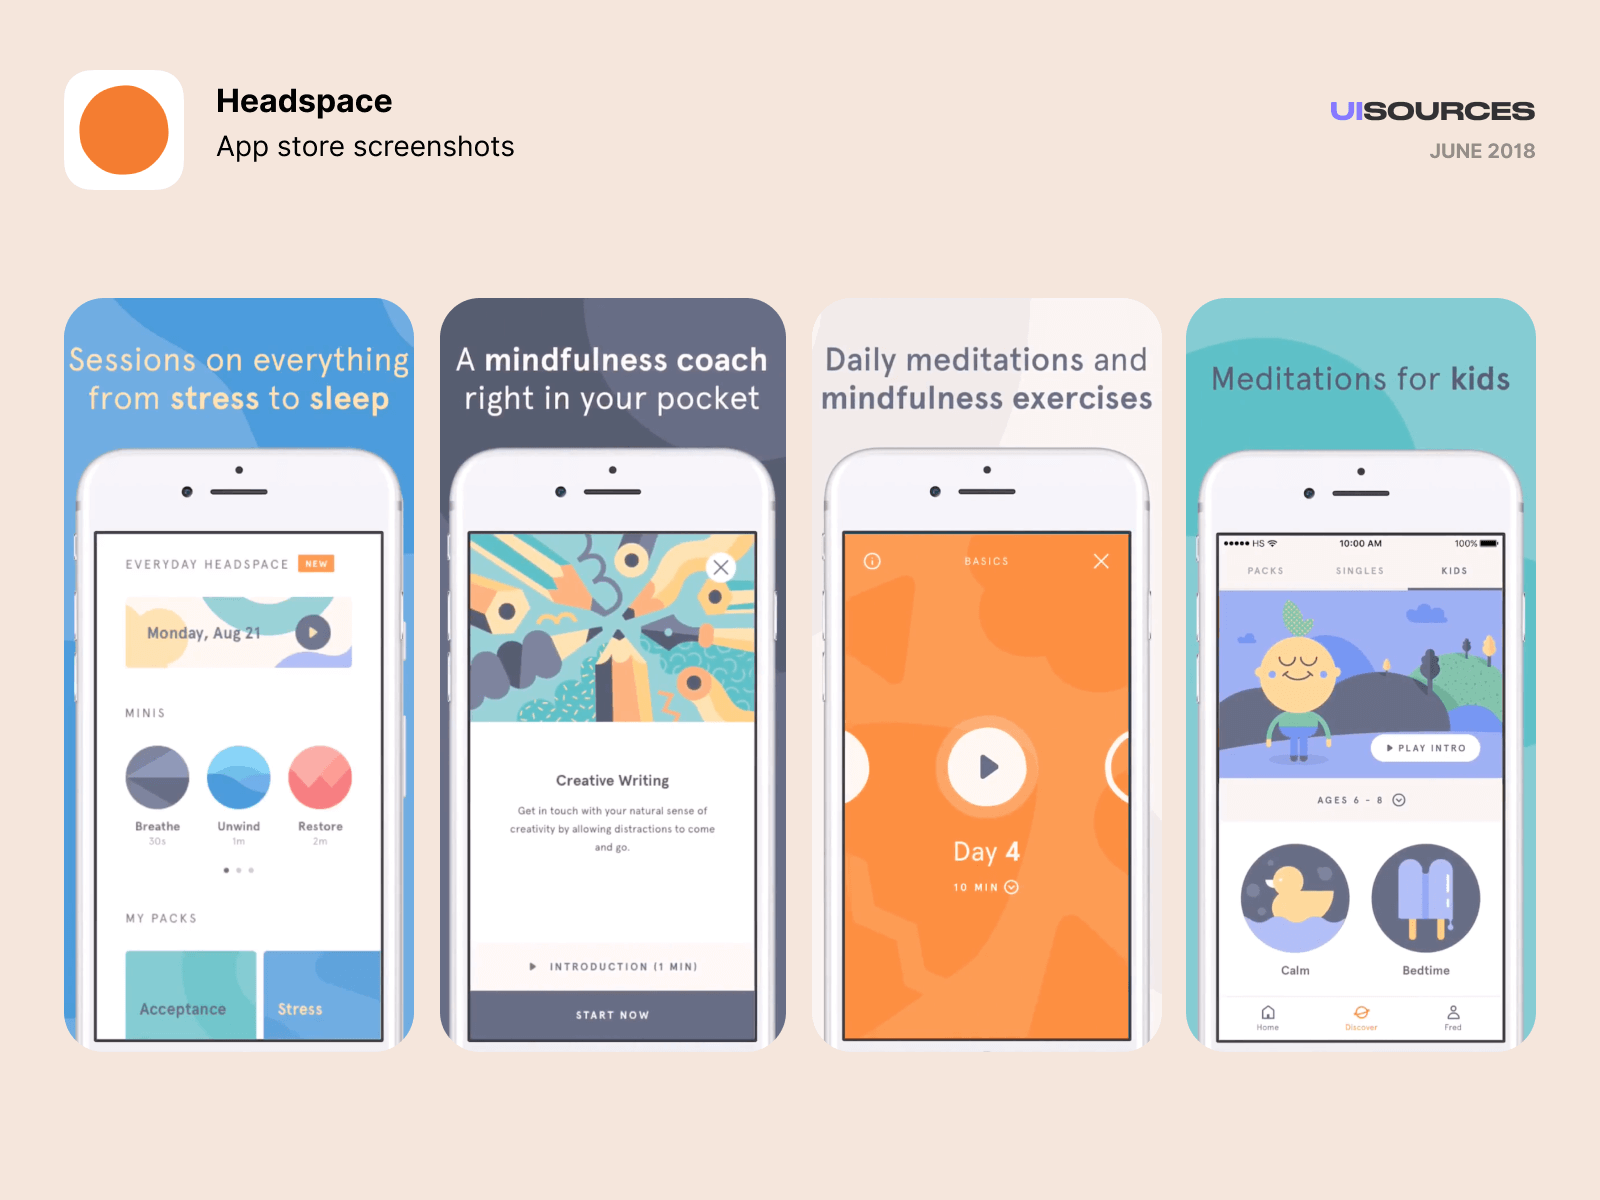 01 headspace app store screenshots may 2019